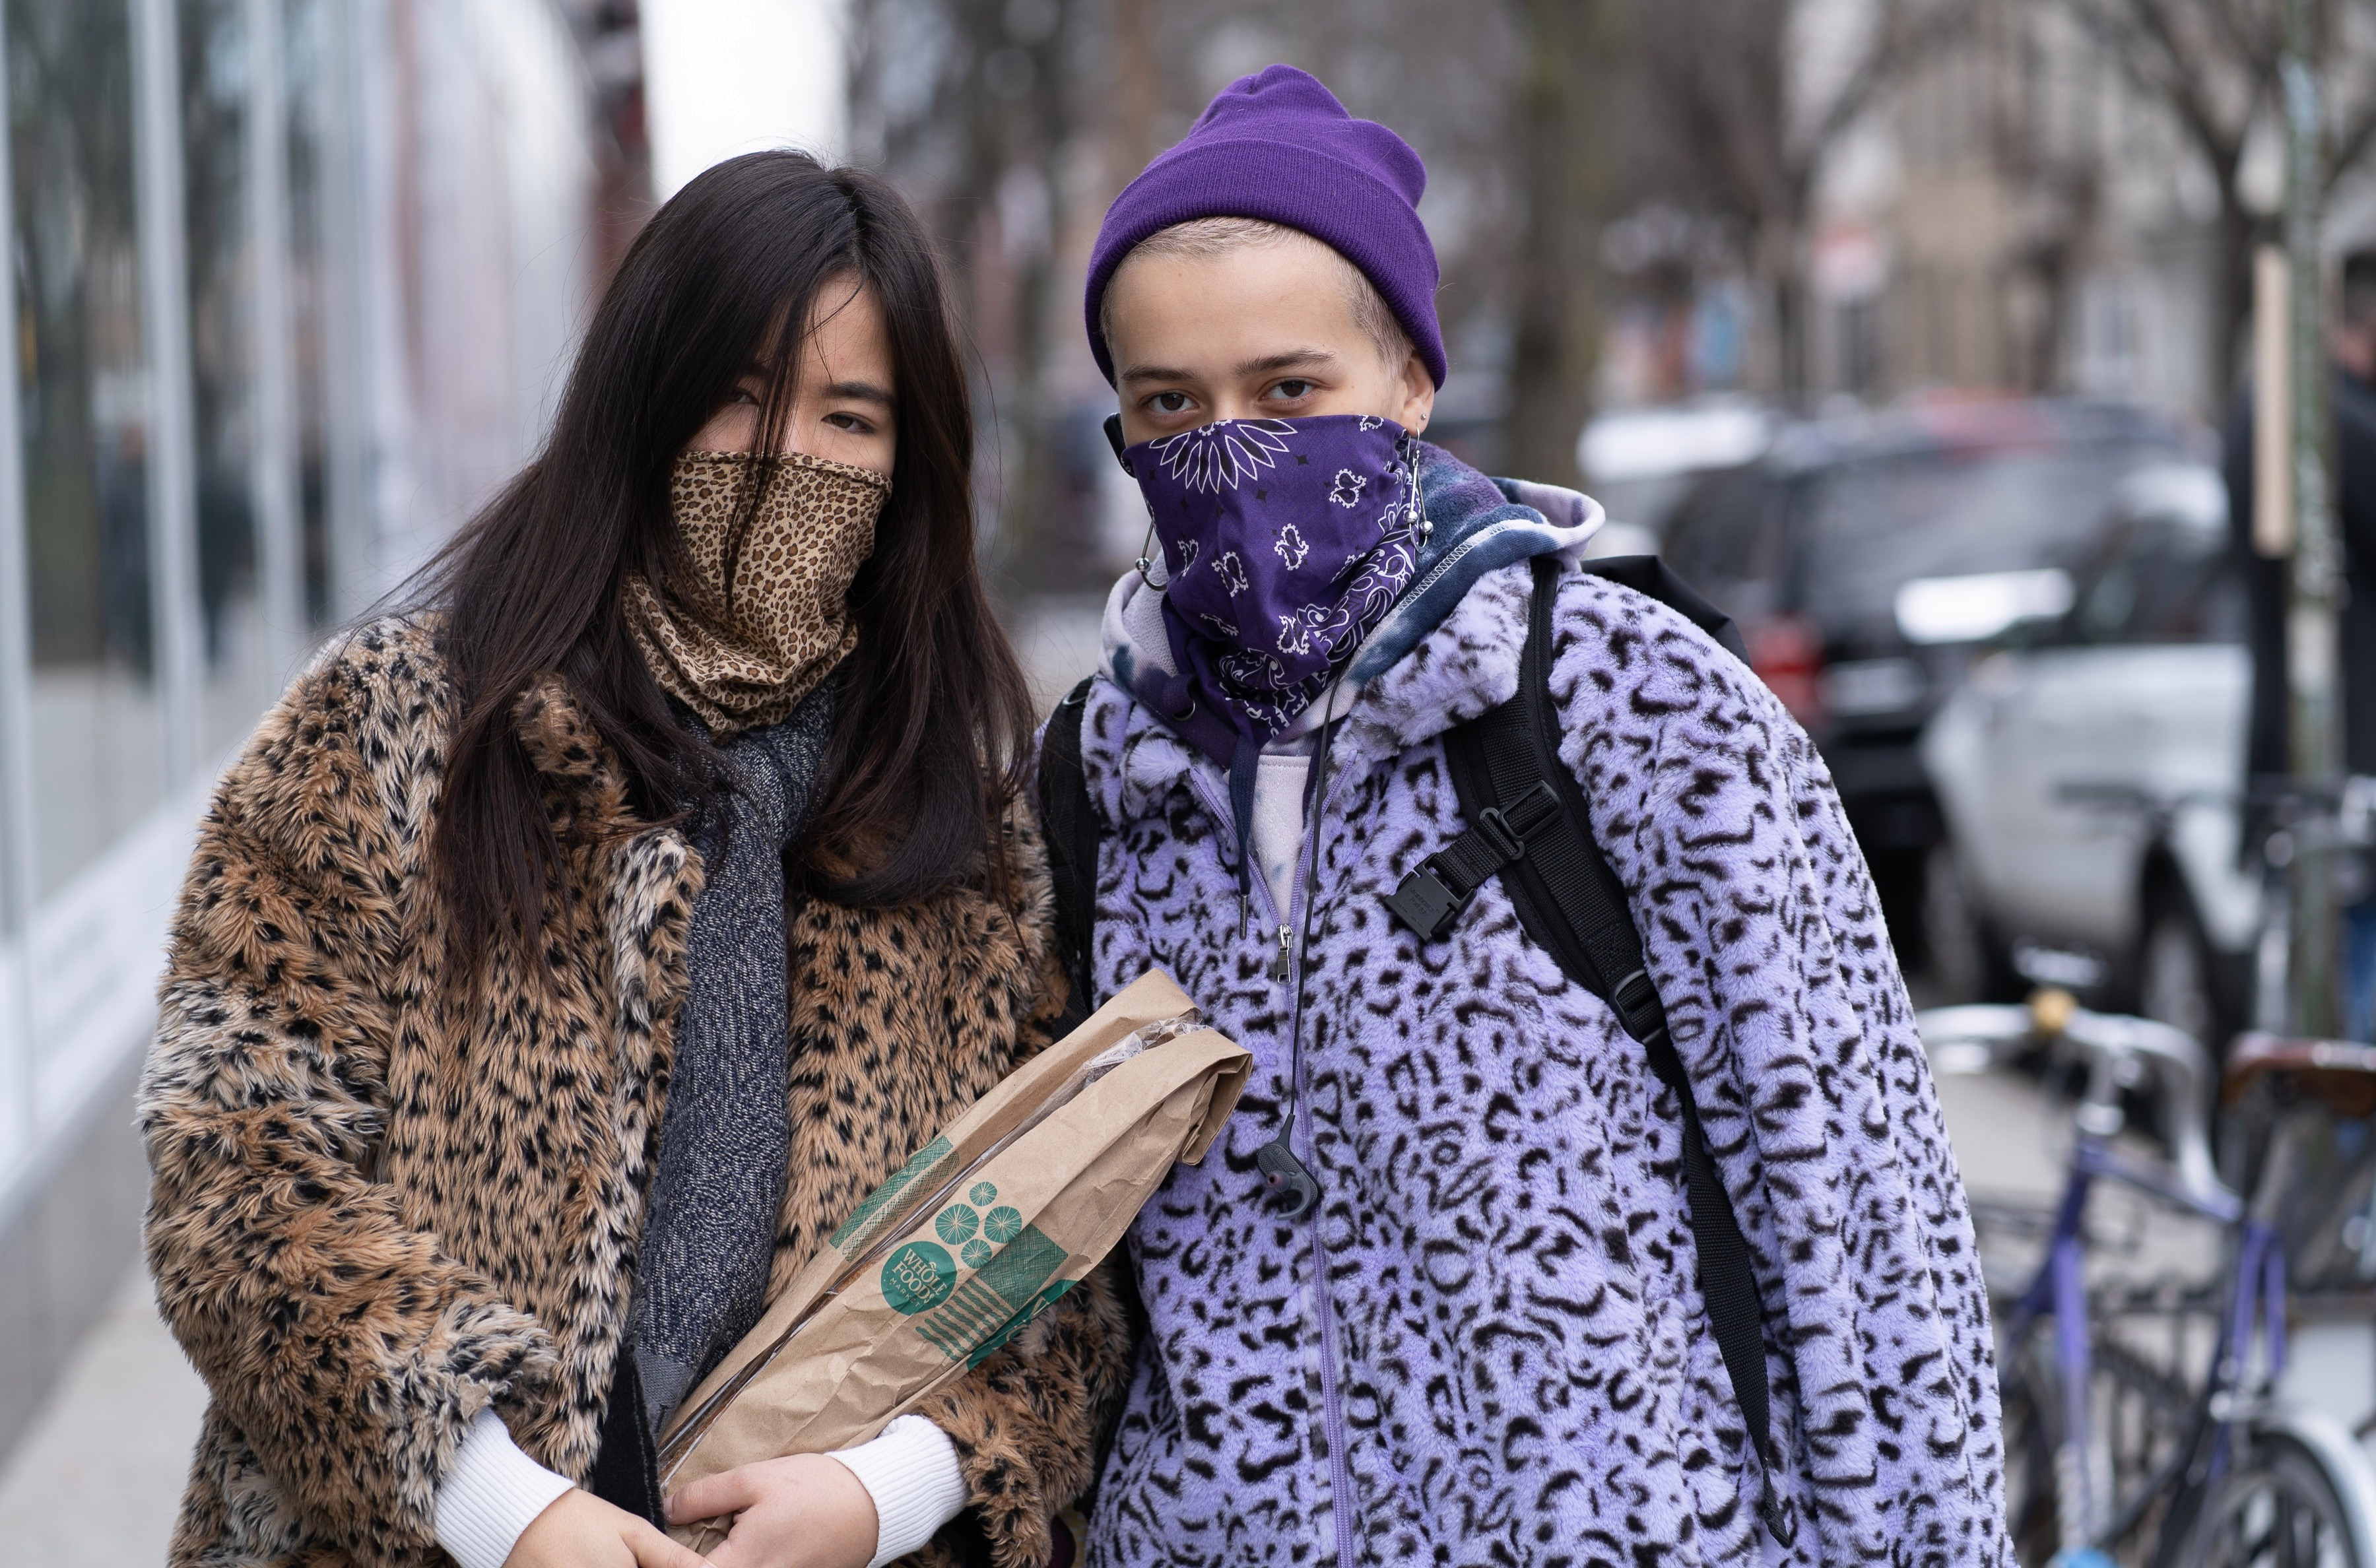 Brits can wear bandanas as a face covering